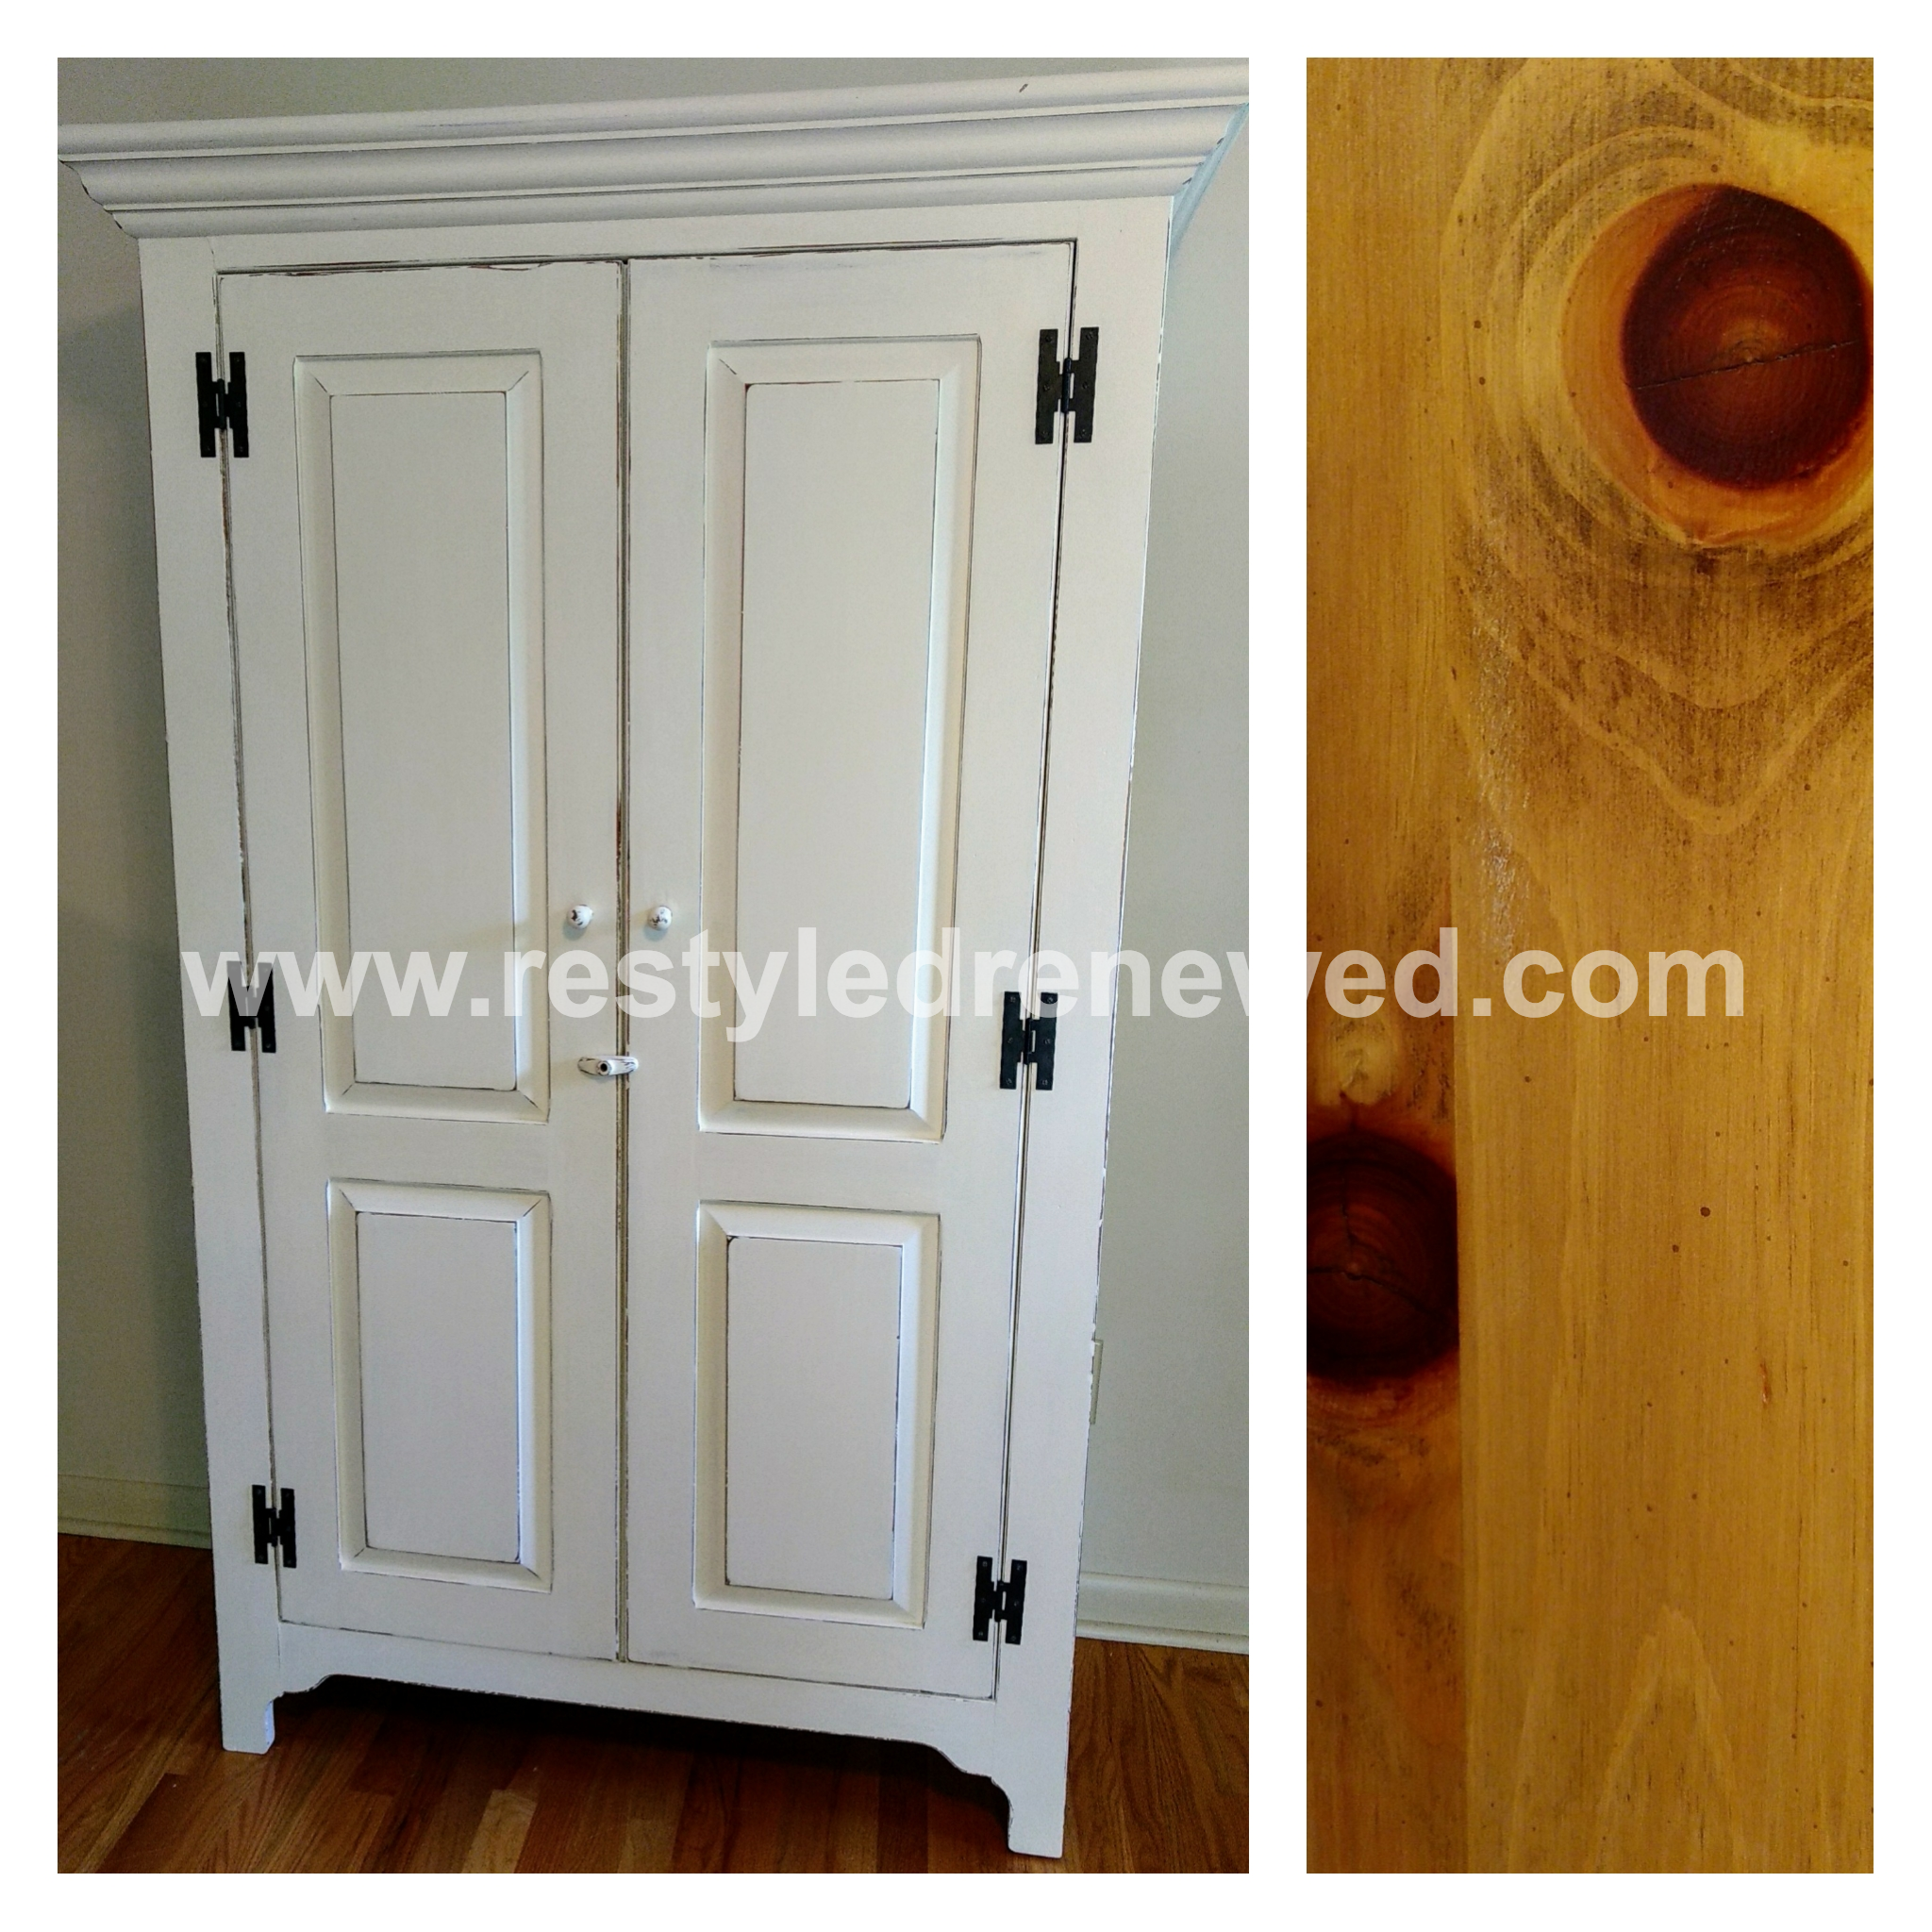 Awesome Armoire In Annie Sloan Chalk Paint Old White And Pure White Mix. How To Prep